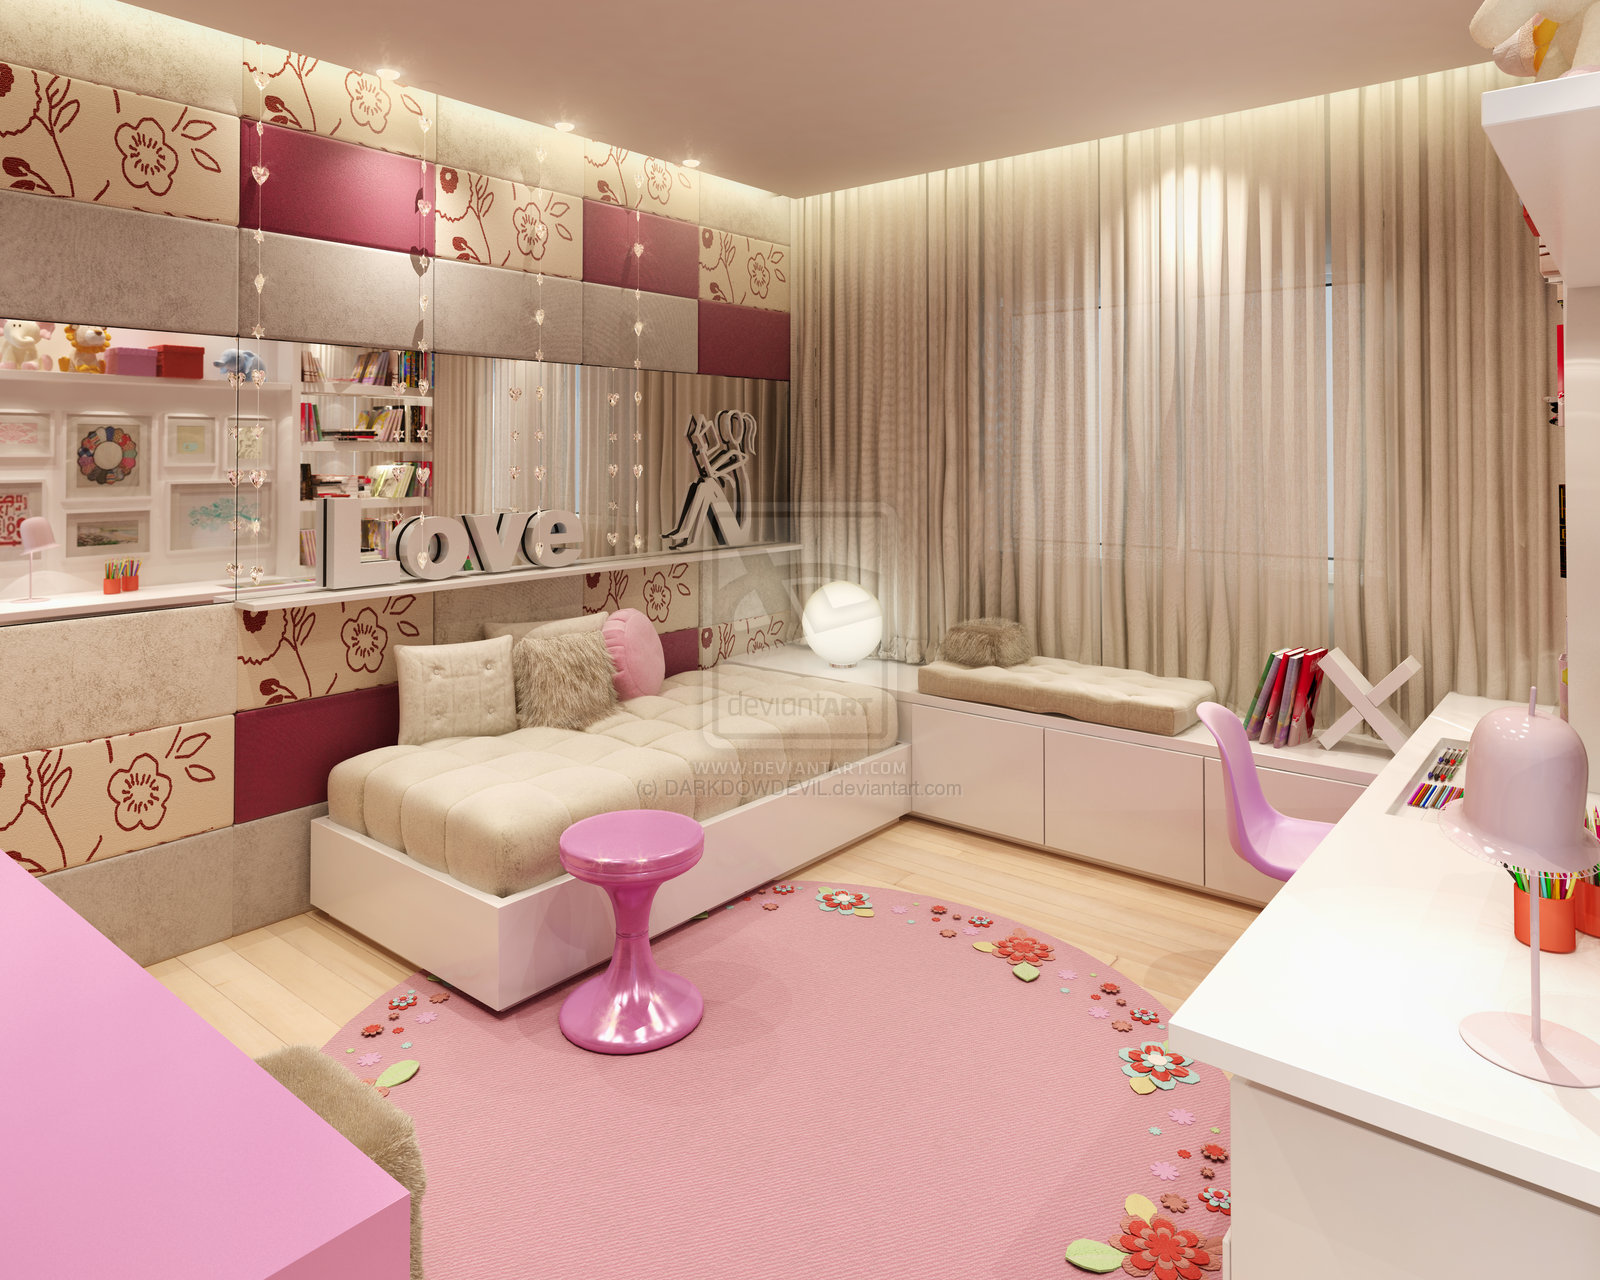 Girly bedroom design ideas wonderful - Cute bedroom ...